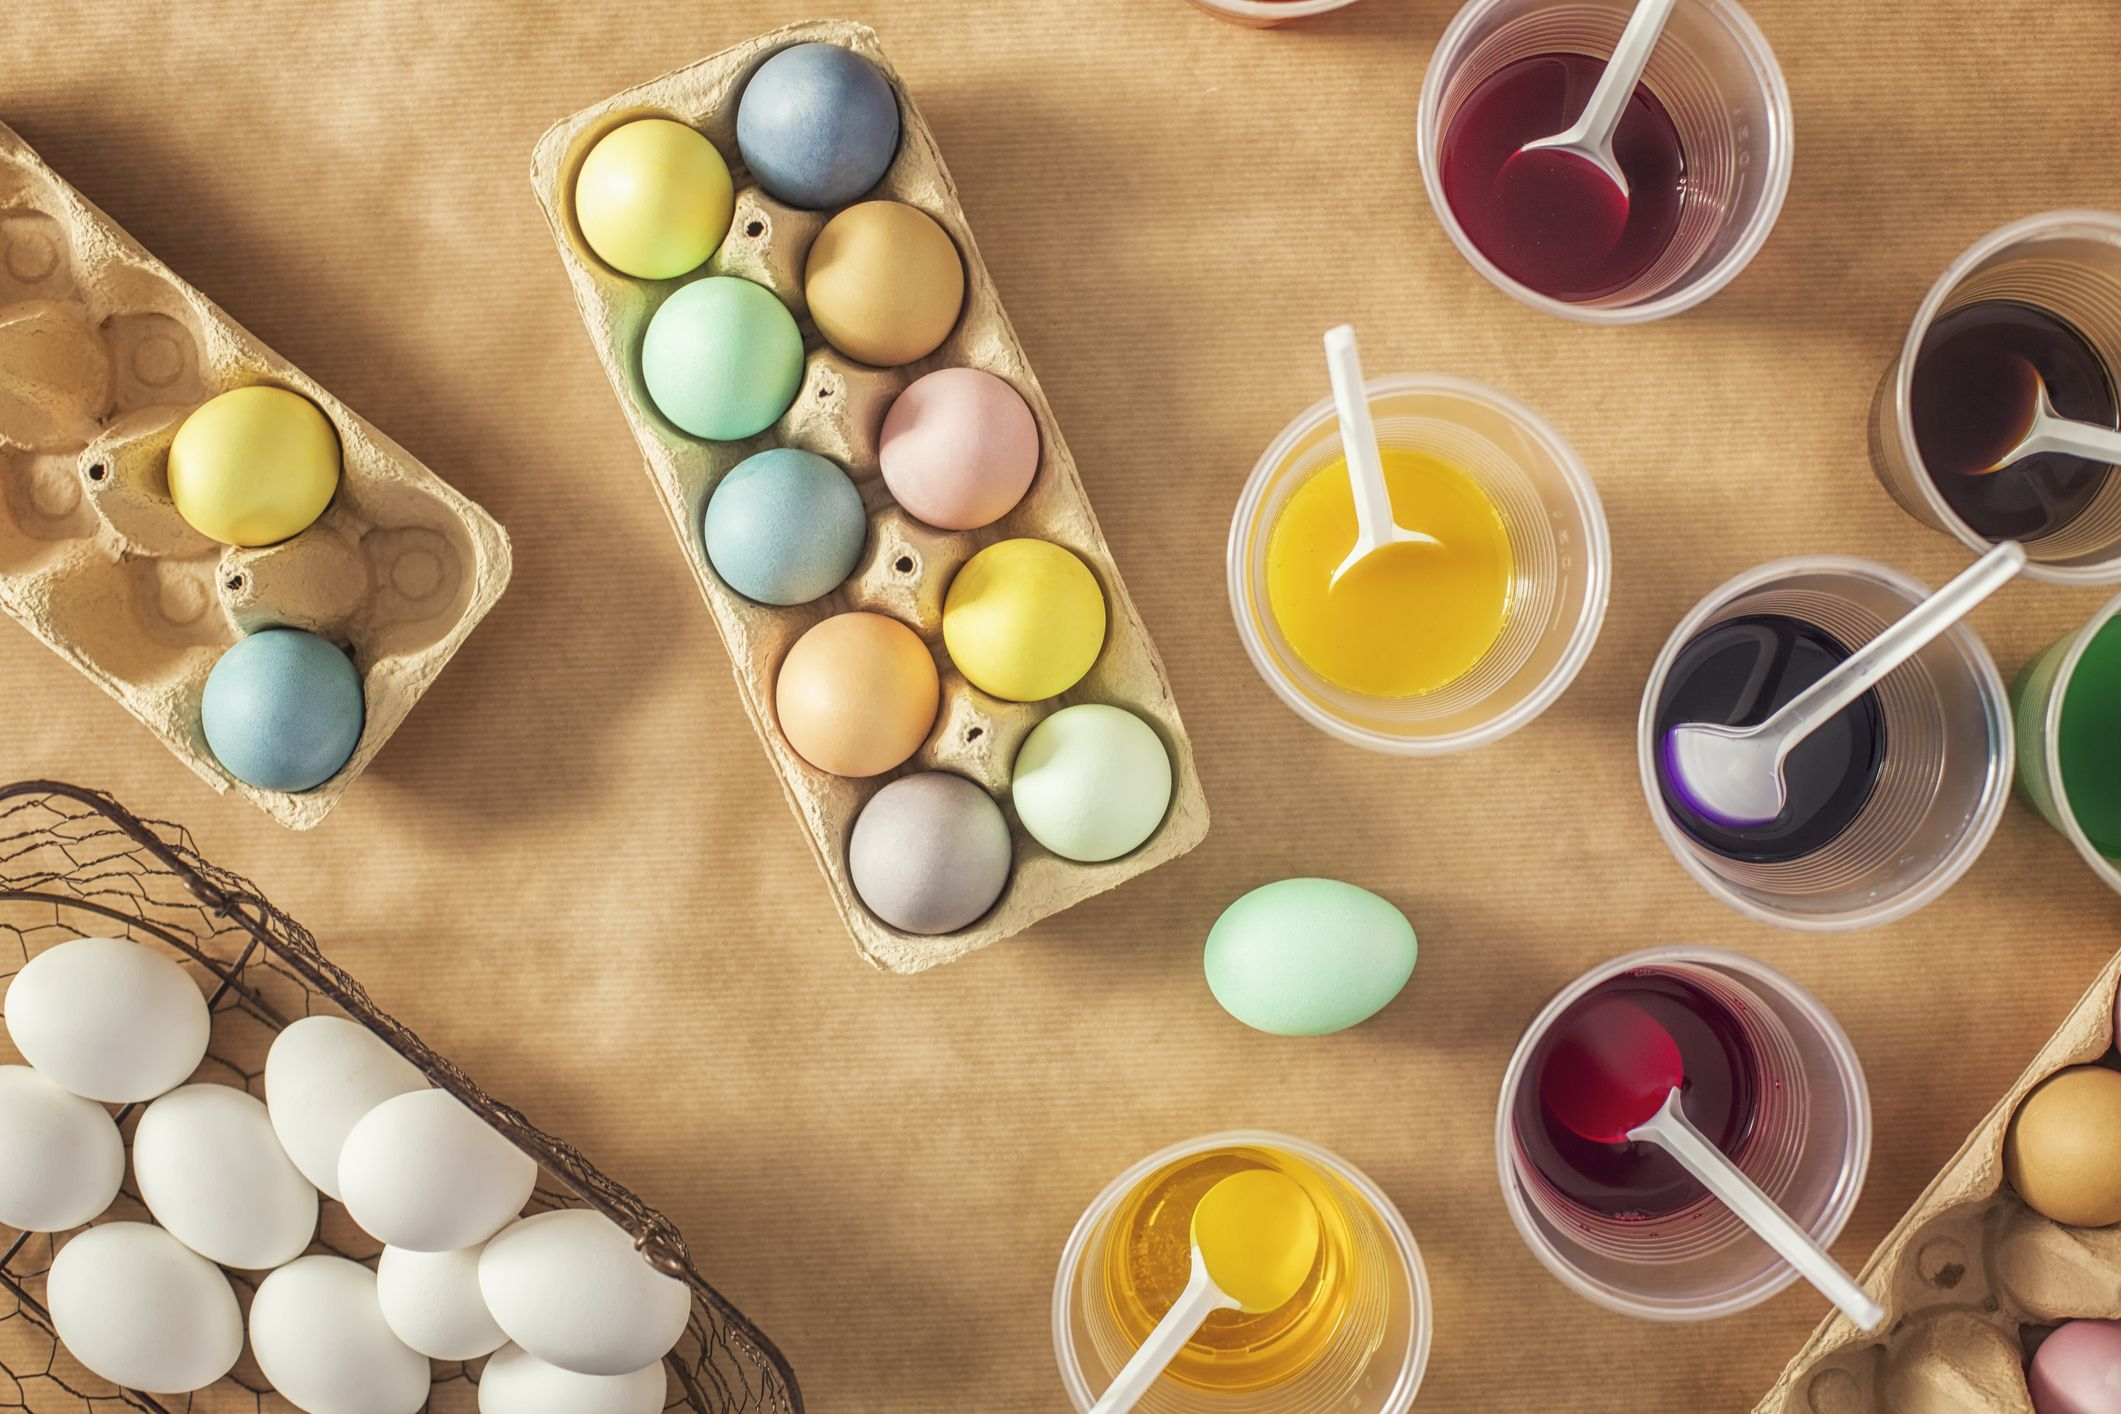 How to Make Natural Easter Egg Dyes - Homemade Dye Recipes for ...